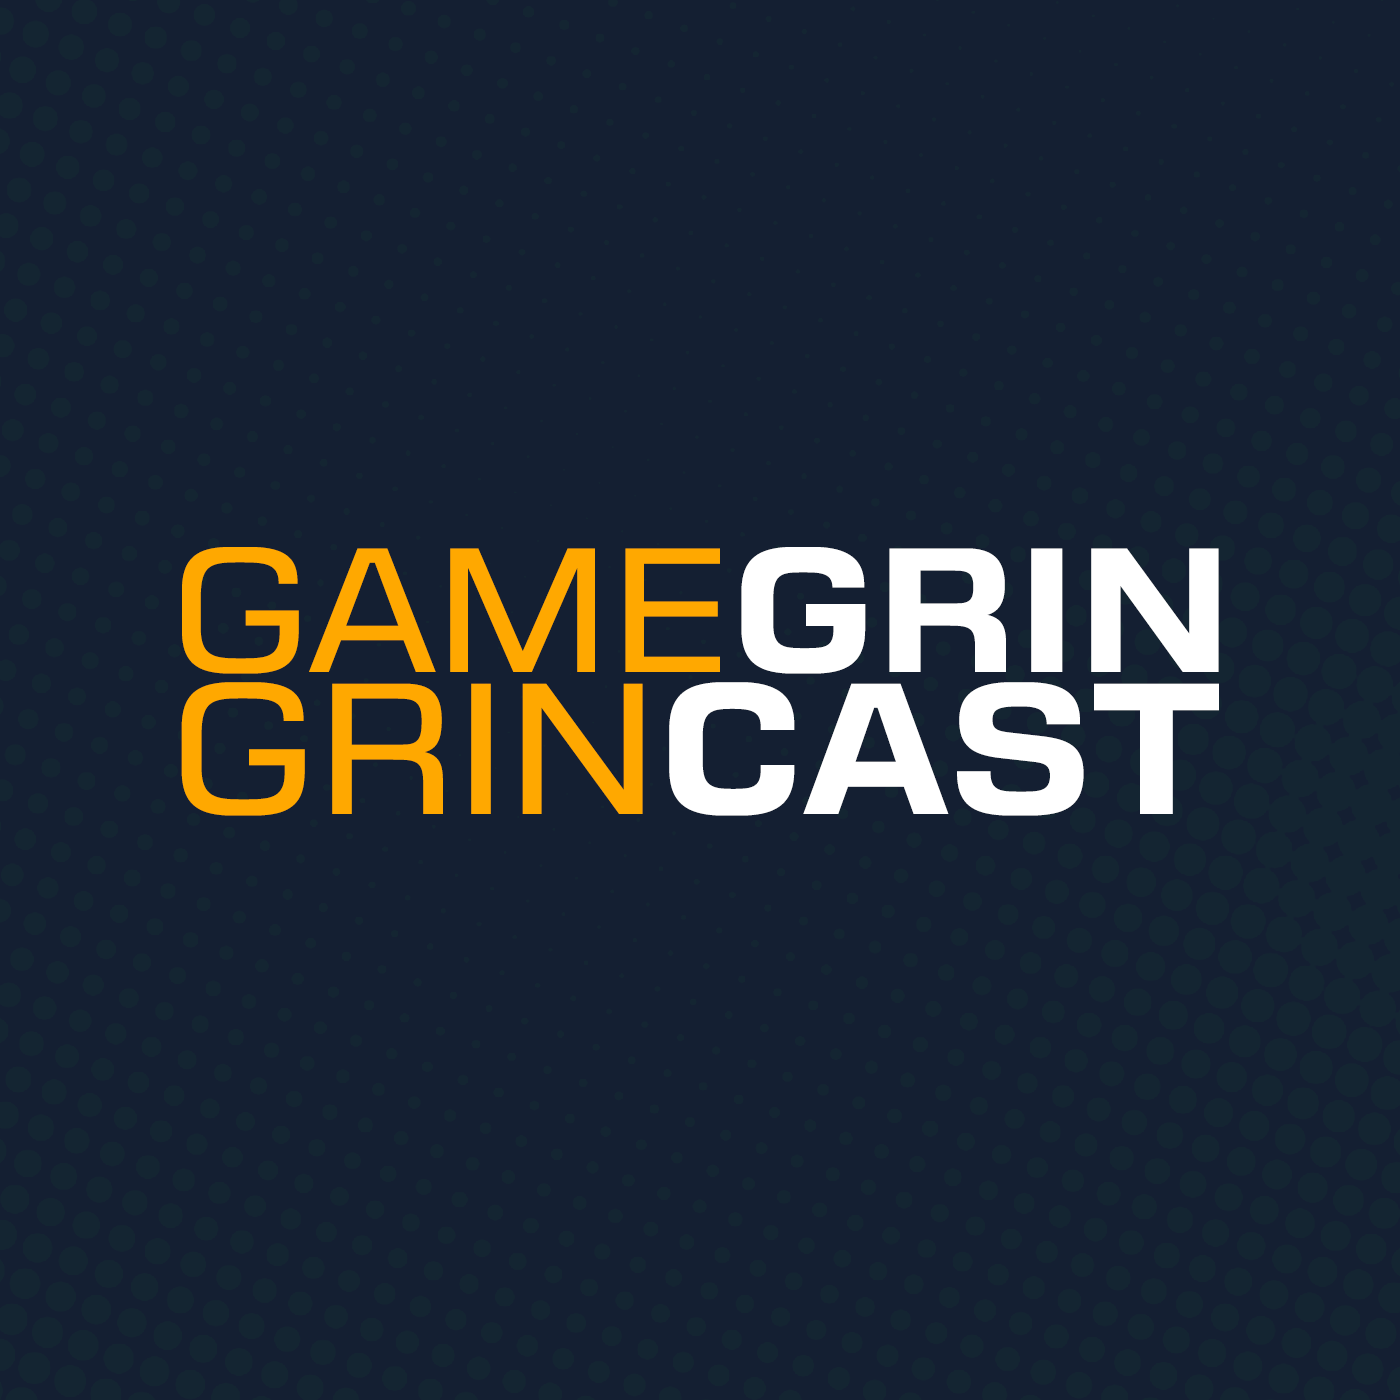 GrinCast - a podcast about videogaming and games from GameGrin